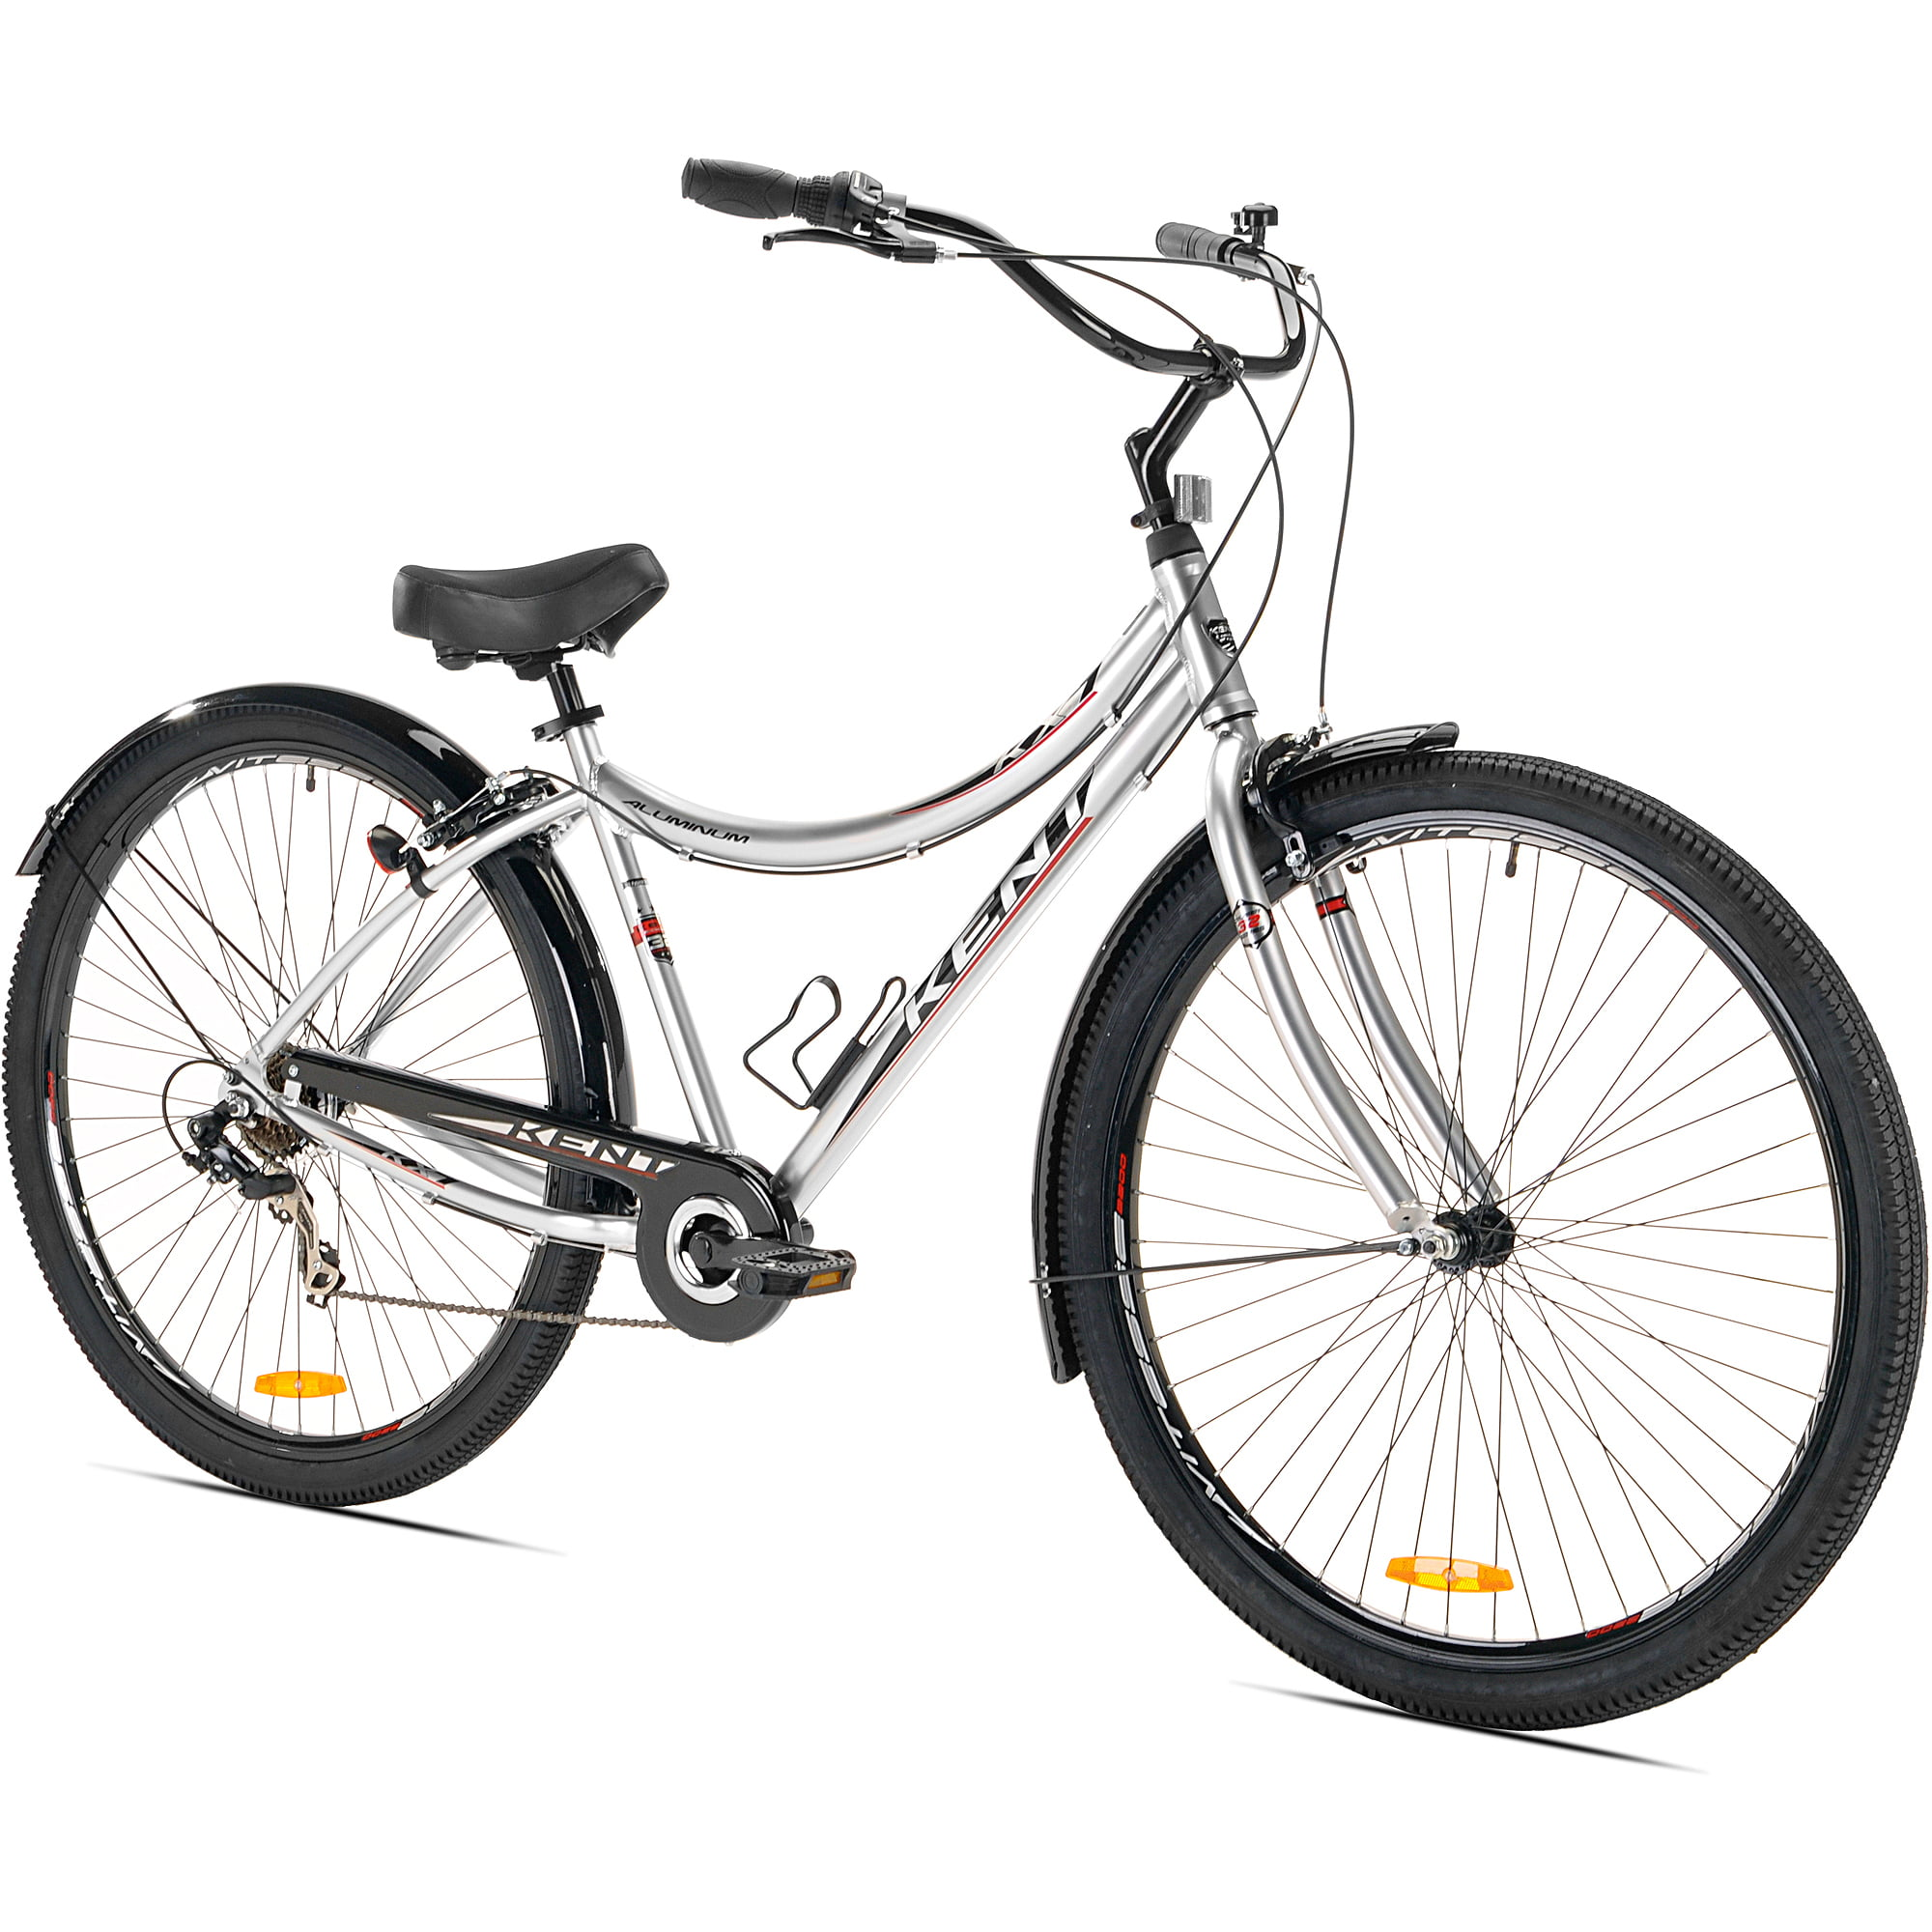 32 Kent Kx 7 Men S Cruiser Bike Silver